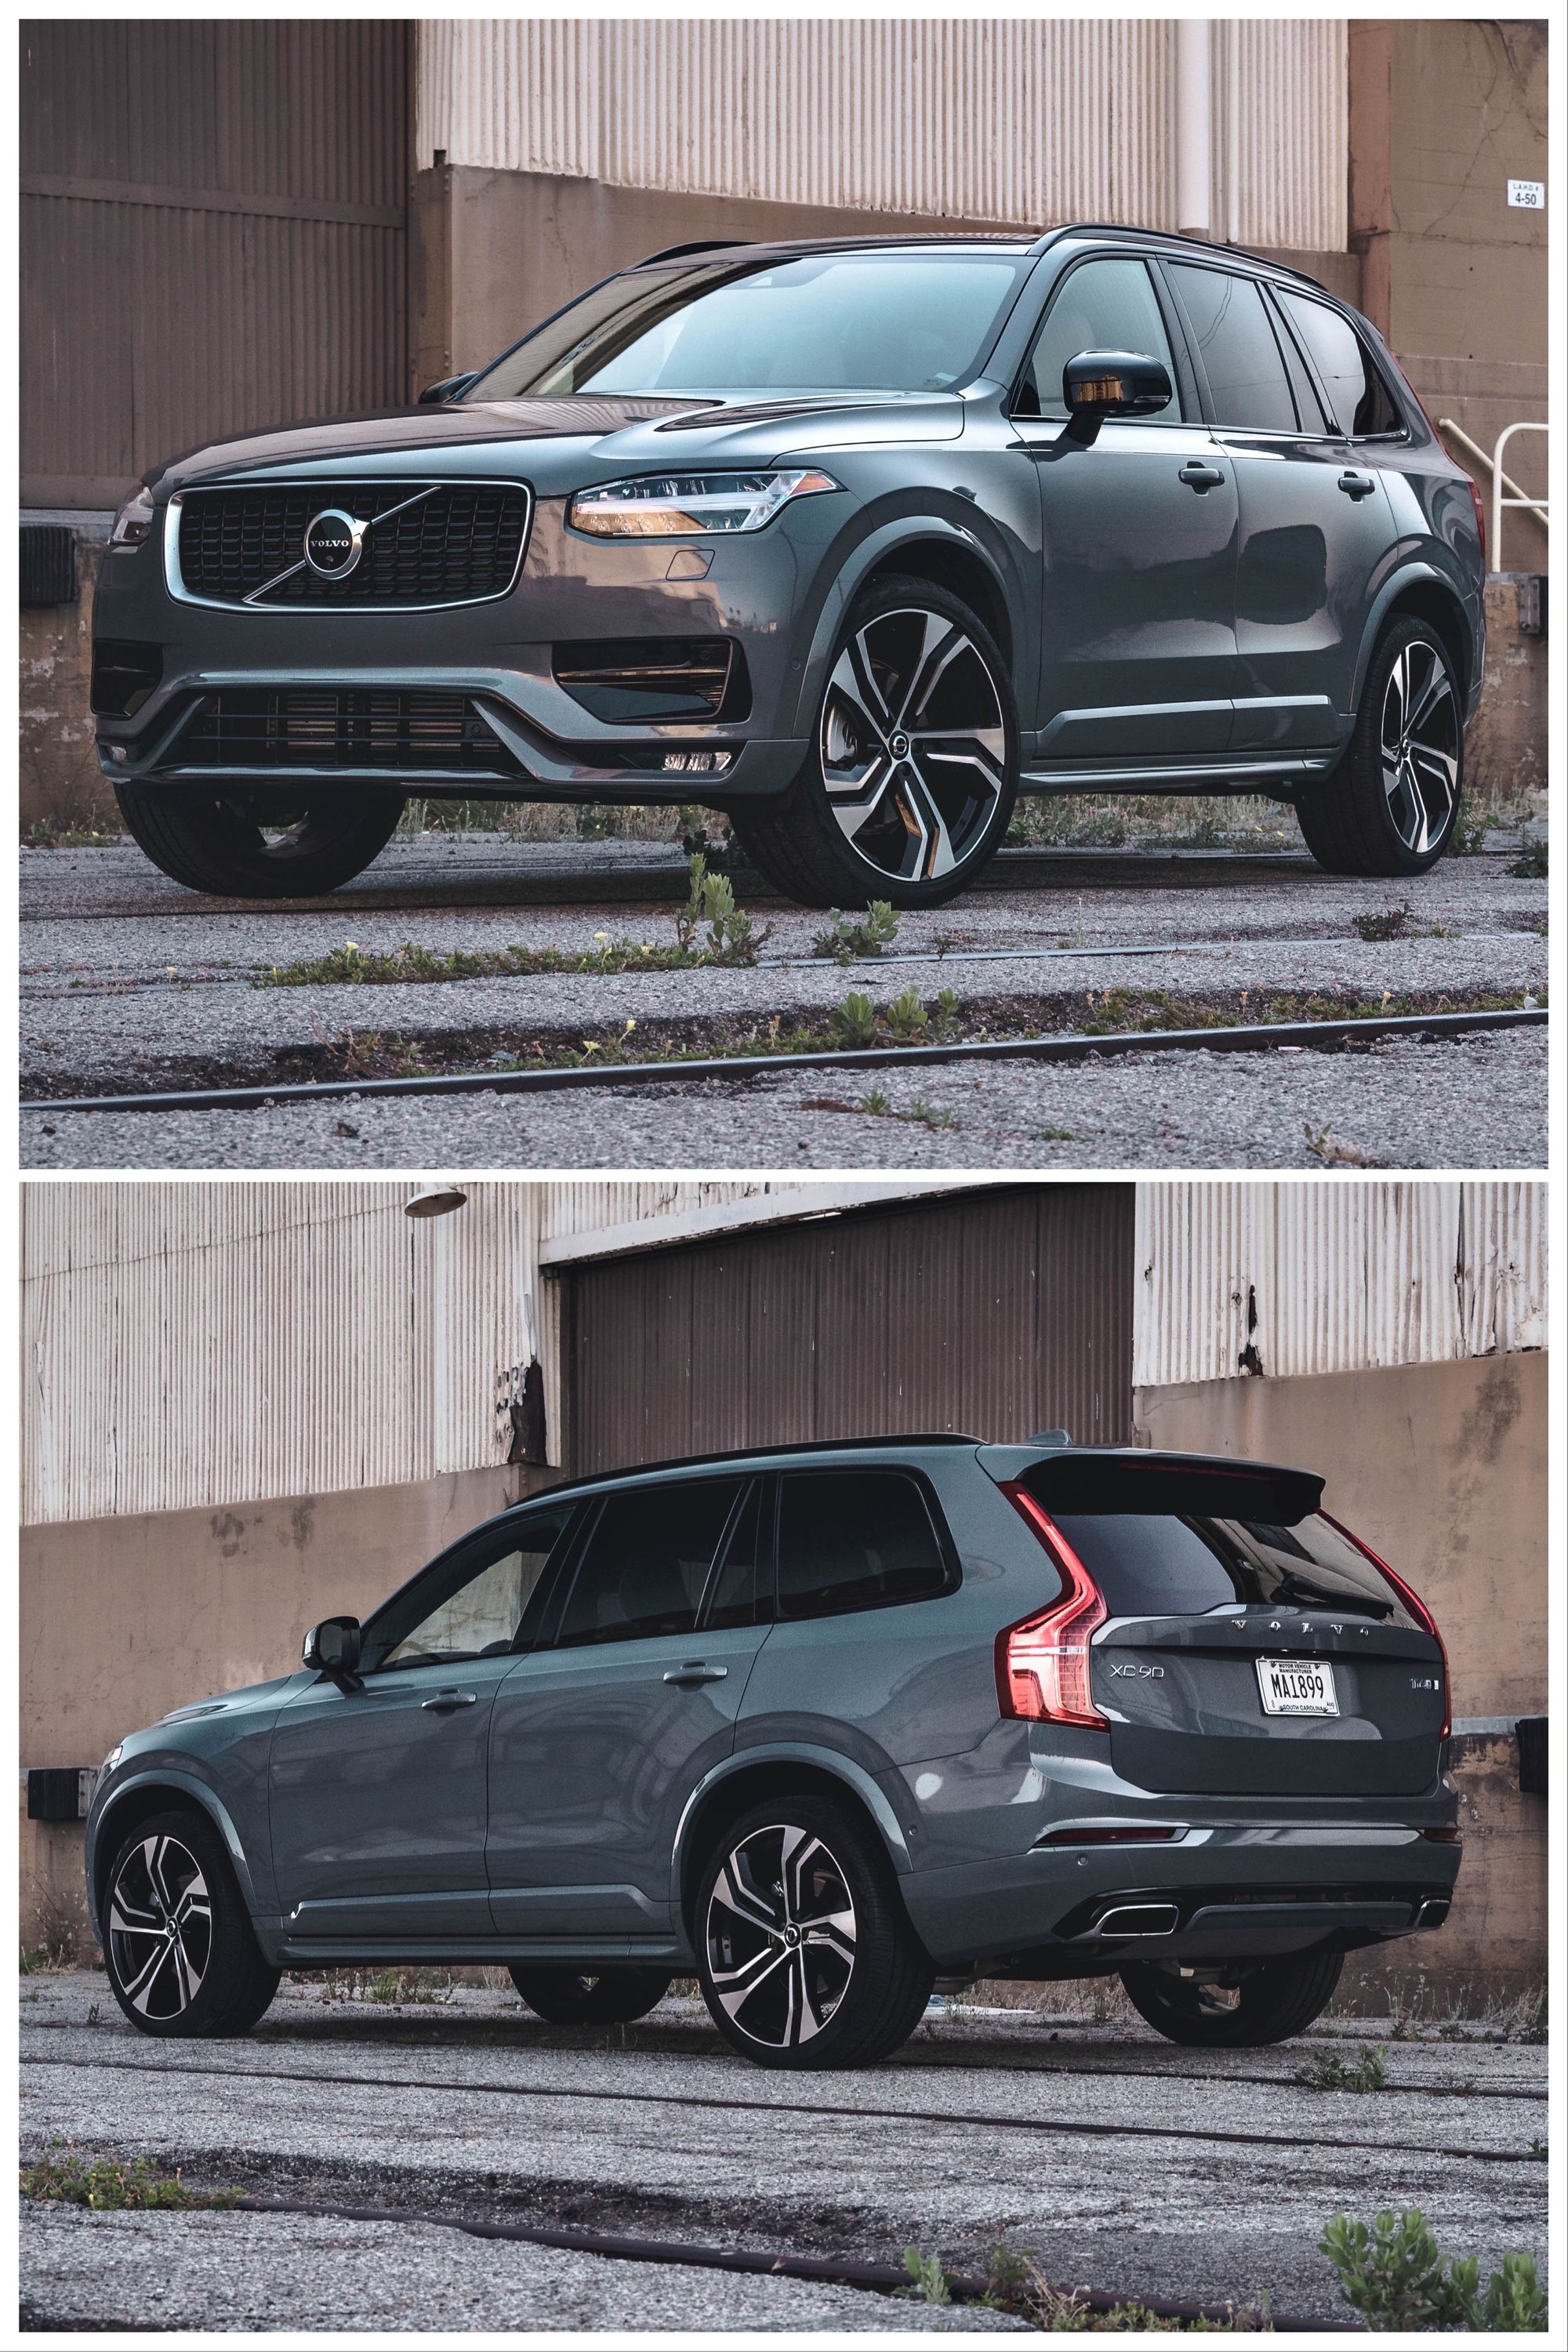 2020 Volvo Xc90 T6 Awd R Design How Does It Stack Up To The Competition Volvo Xc90 Volvo Cars Volvo